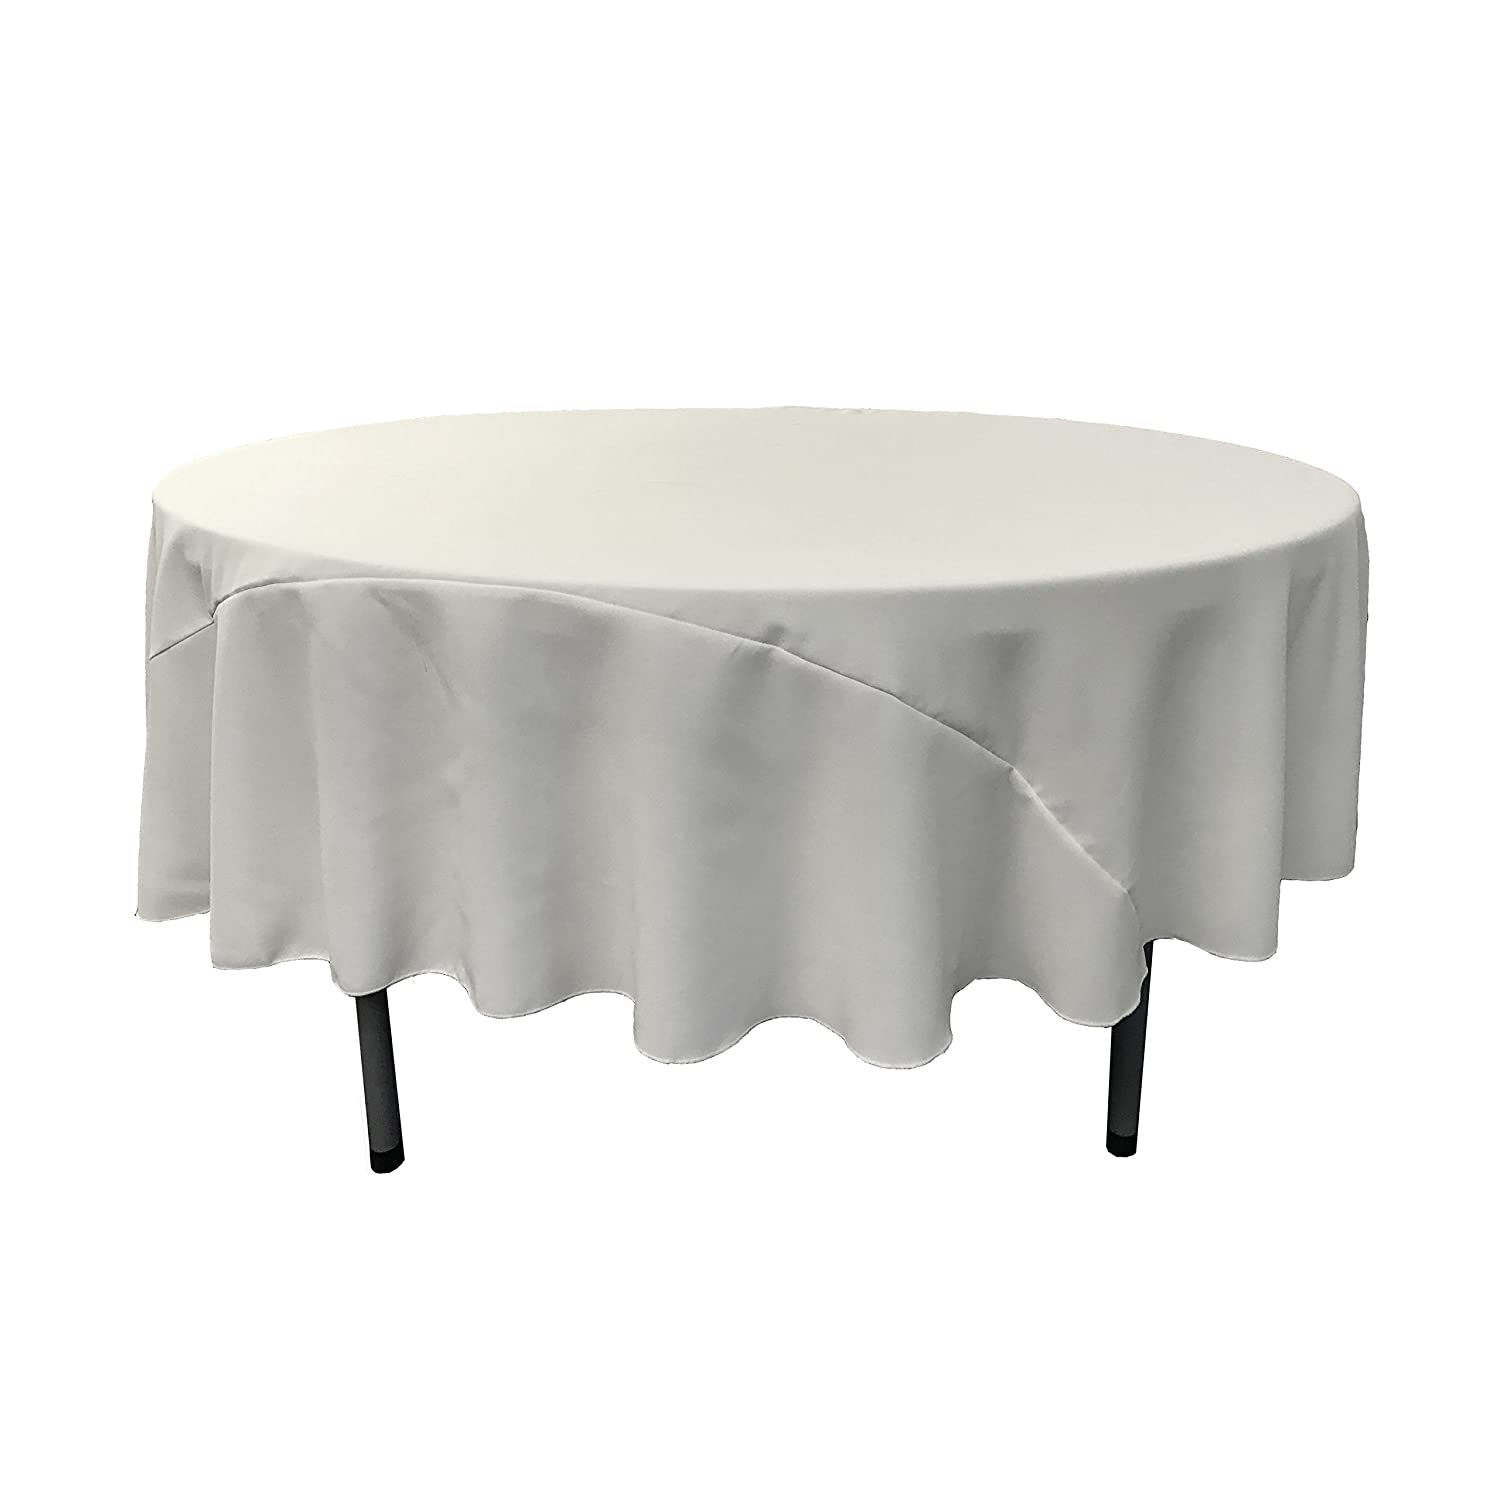 96 inch round tablecloth - Amazon Com La Linen 96 Inch Round Polyester Poplin Tablecloth Pack Of 1 White Everything Else